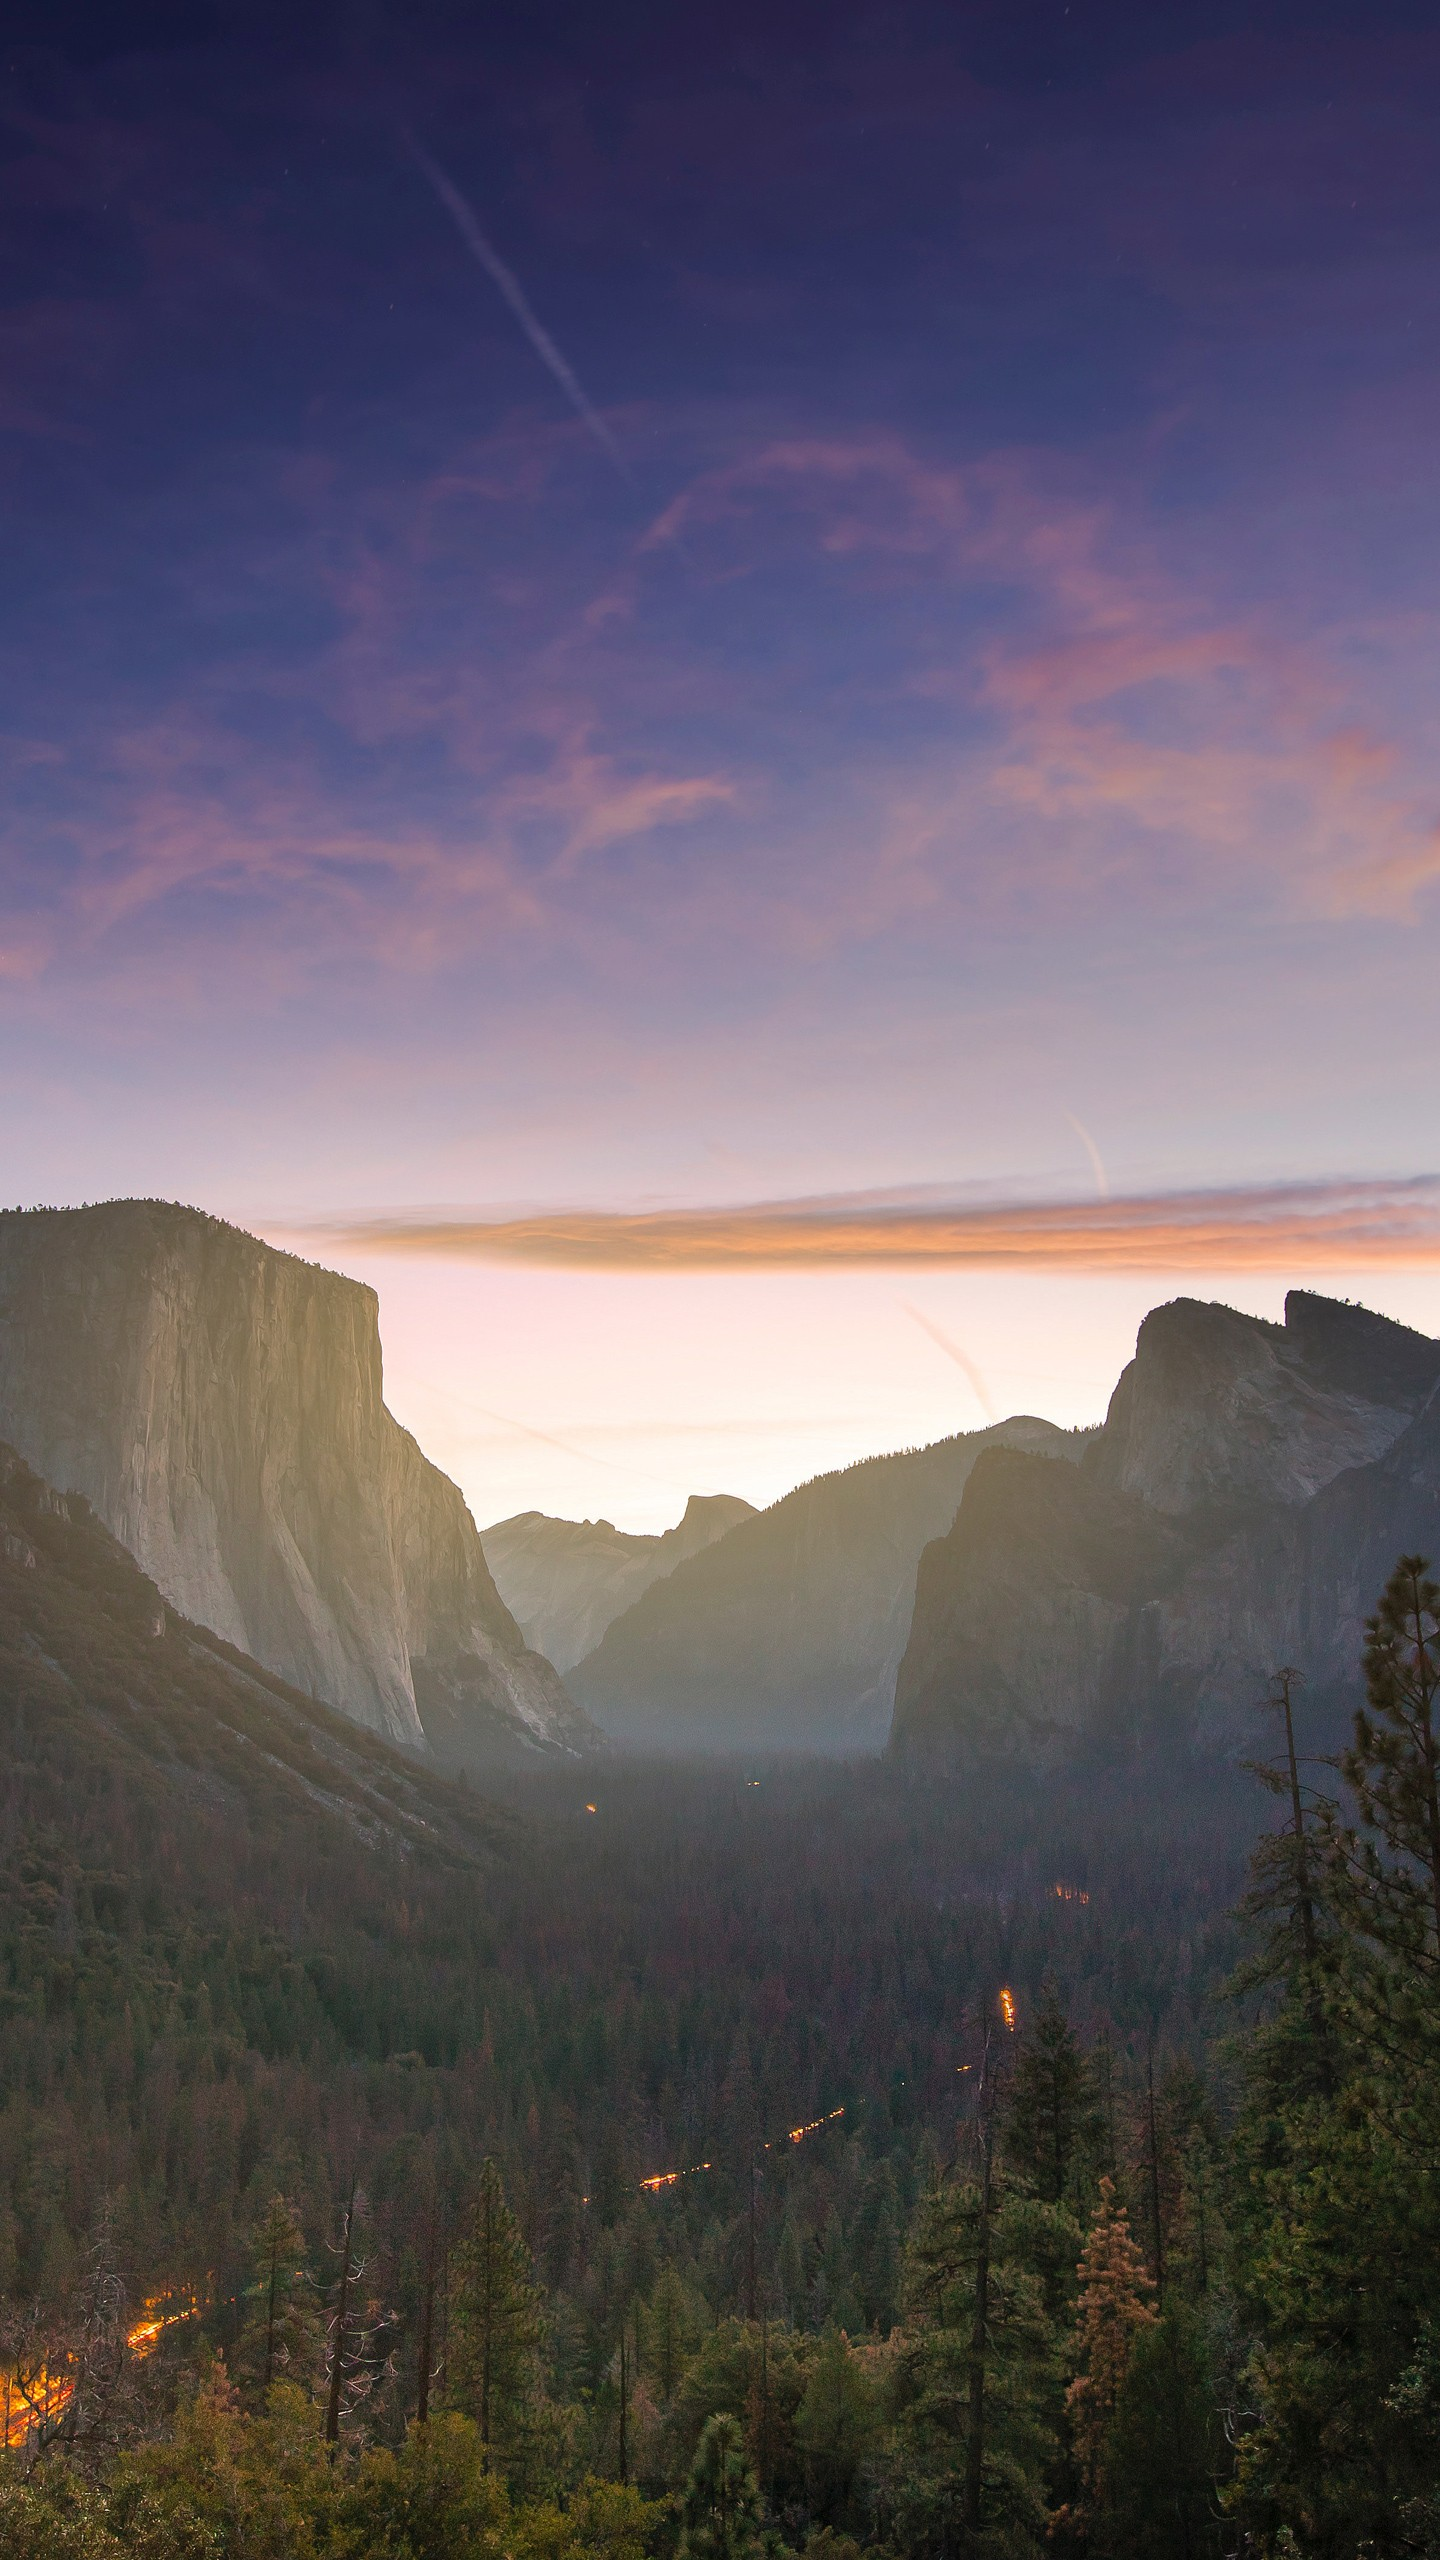 Wallpaper For Iphone X Hd Yosemite Valley Sierra Nevada 4k Wallpapers Hd